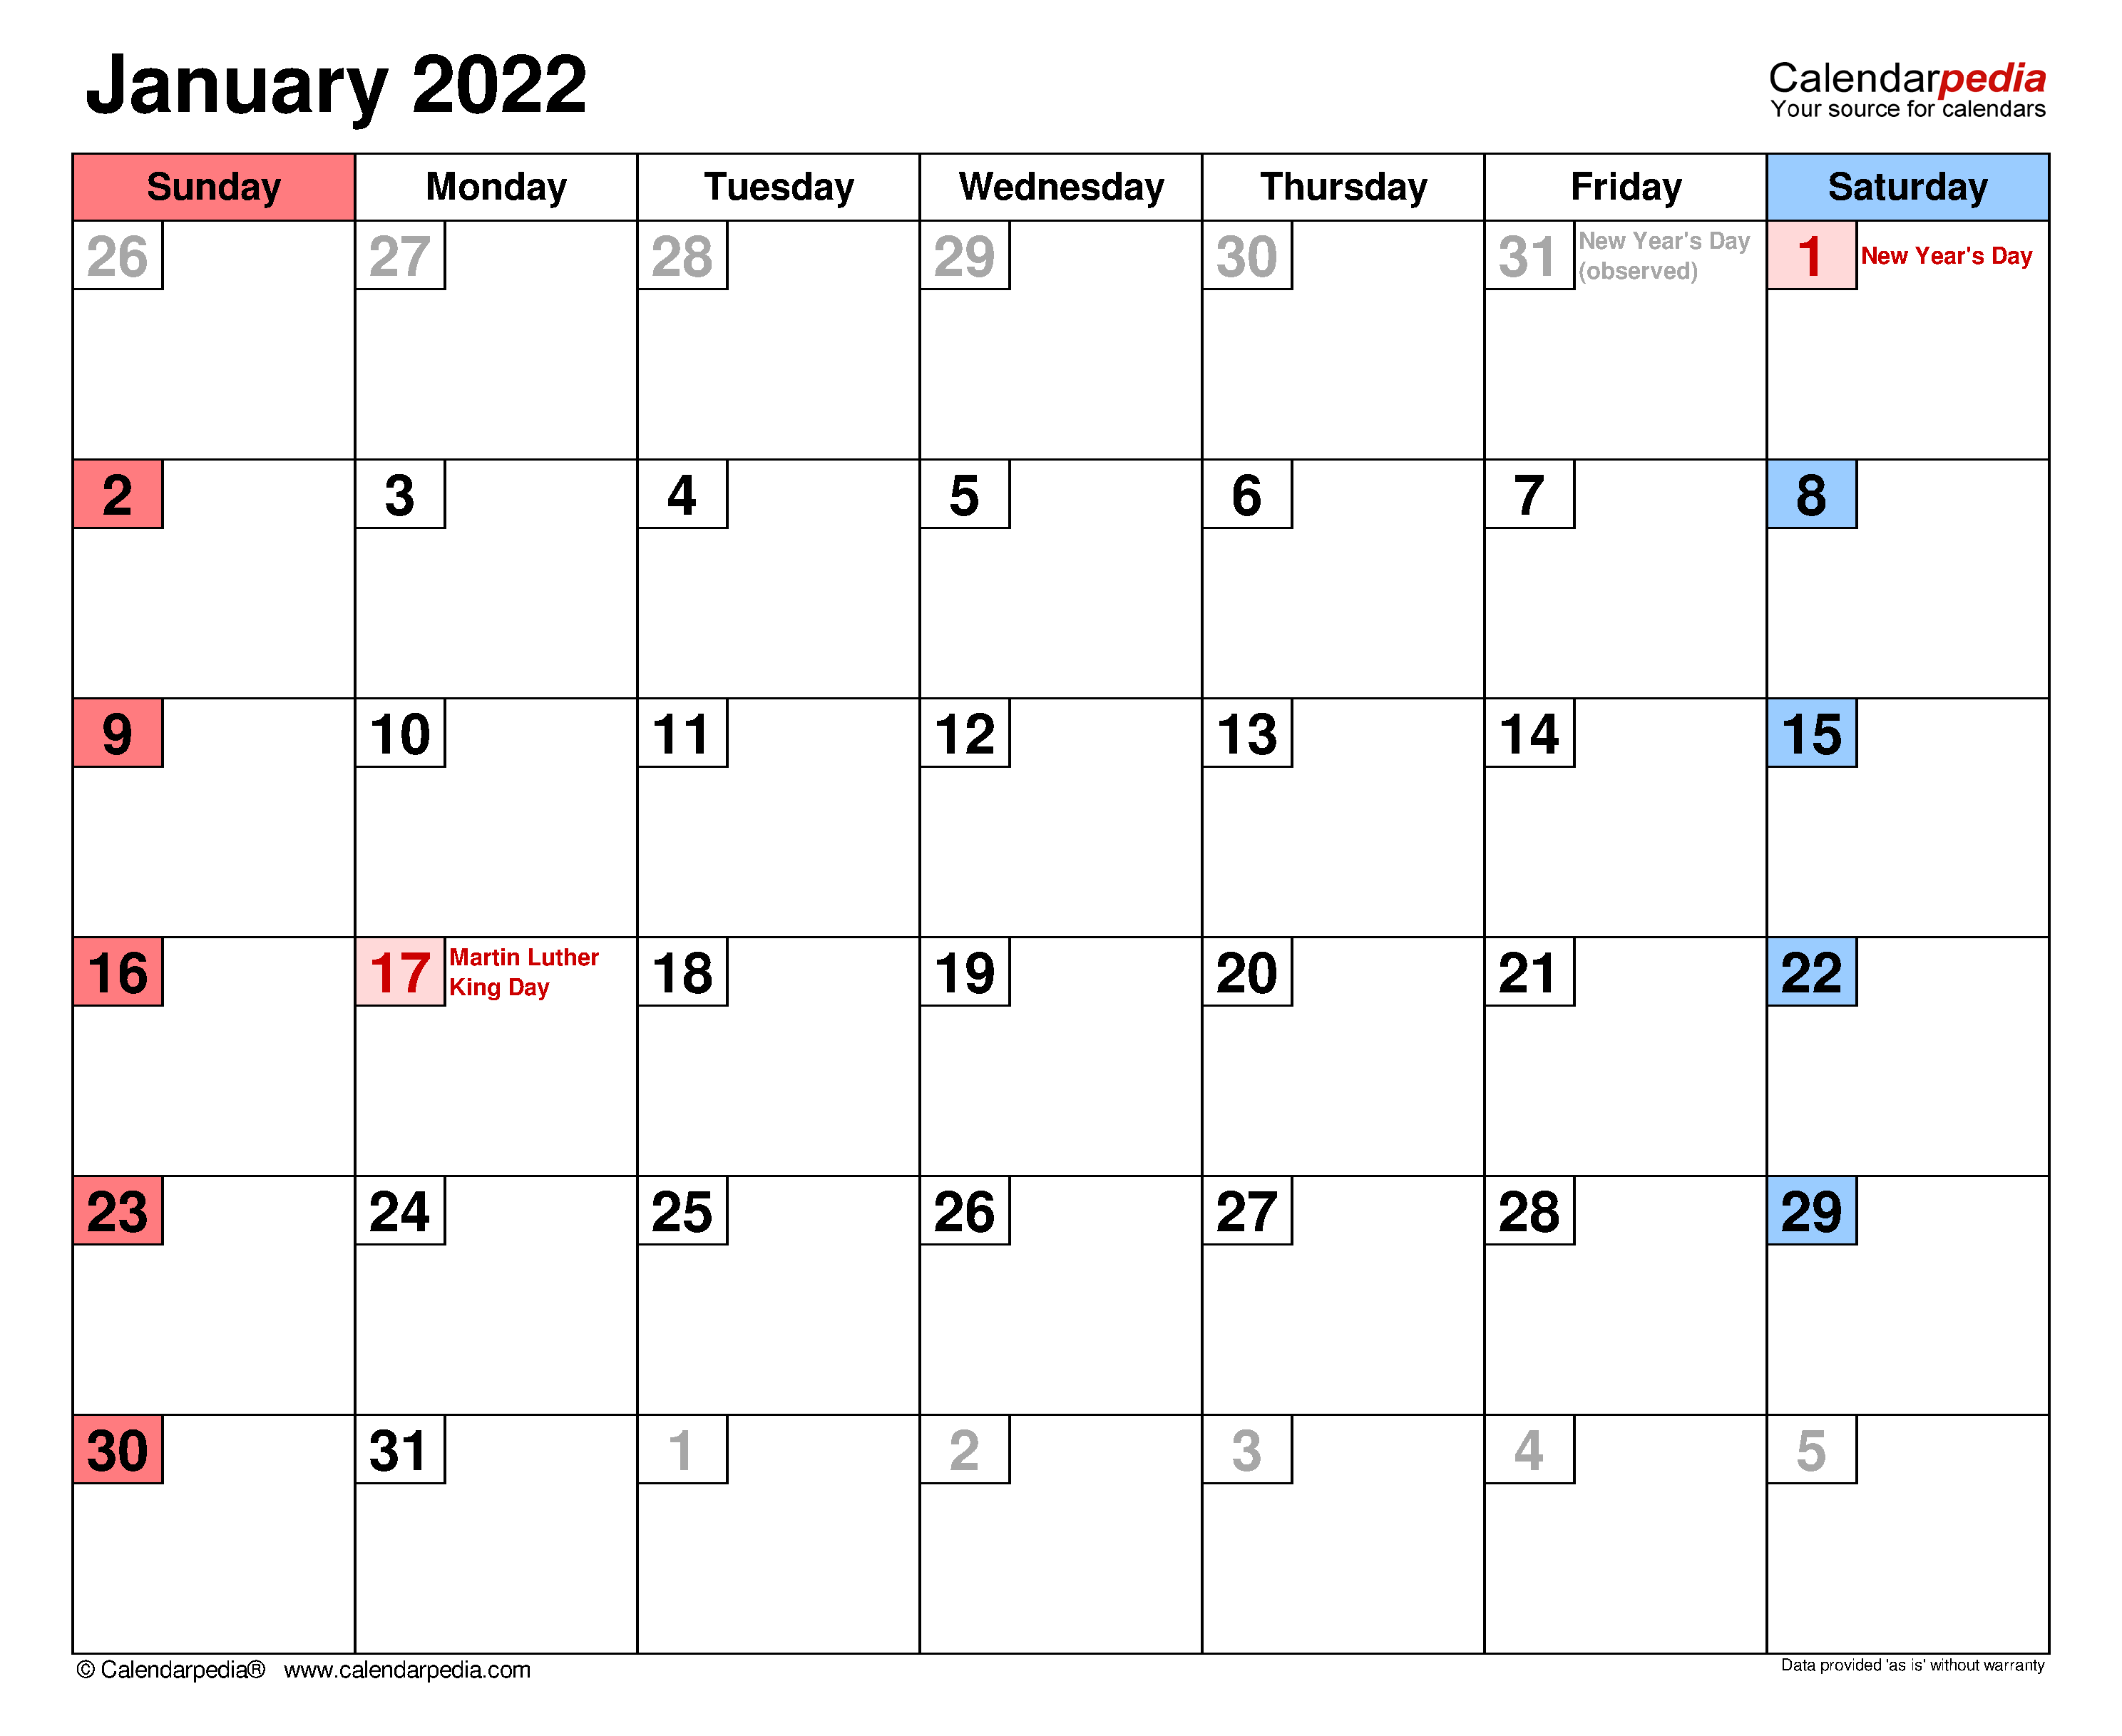 January 2022 Calendar | Templates For Word, Excel And Pdf with regard to Free Printable Calendar Templates January 2022